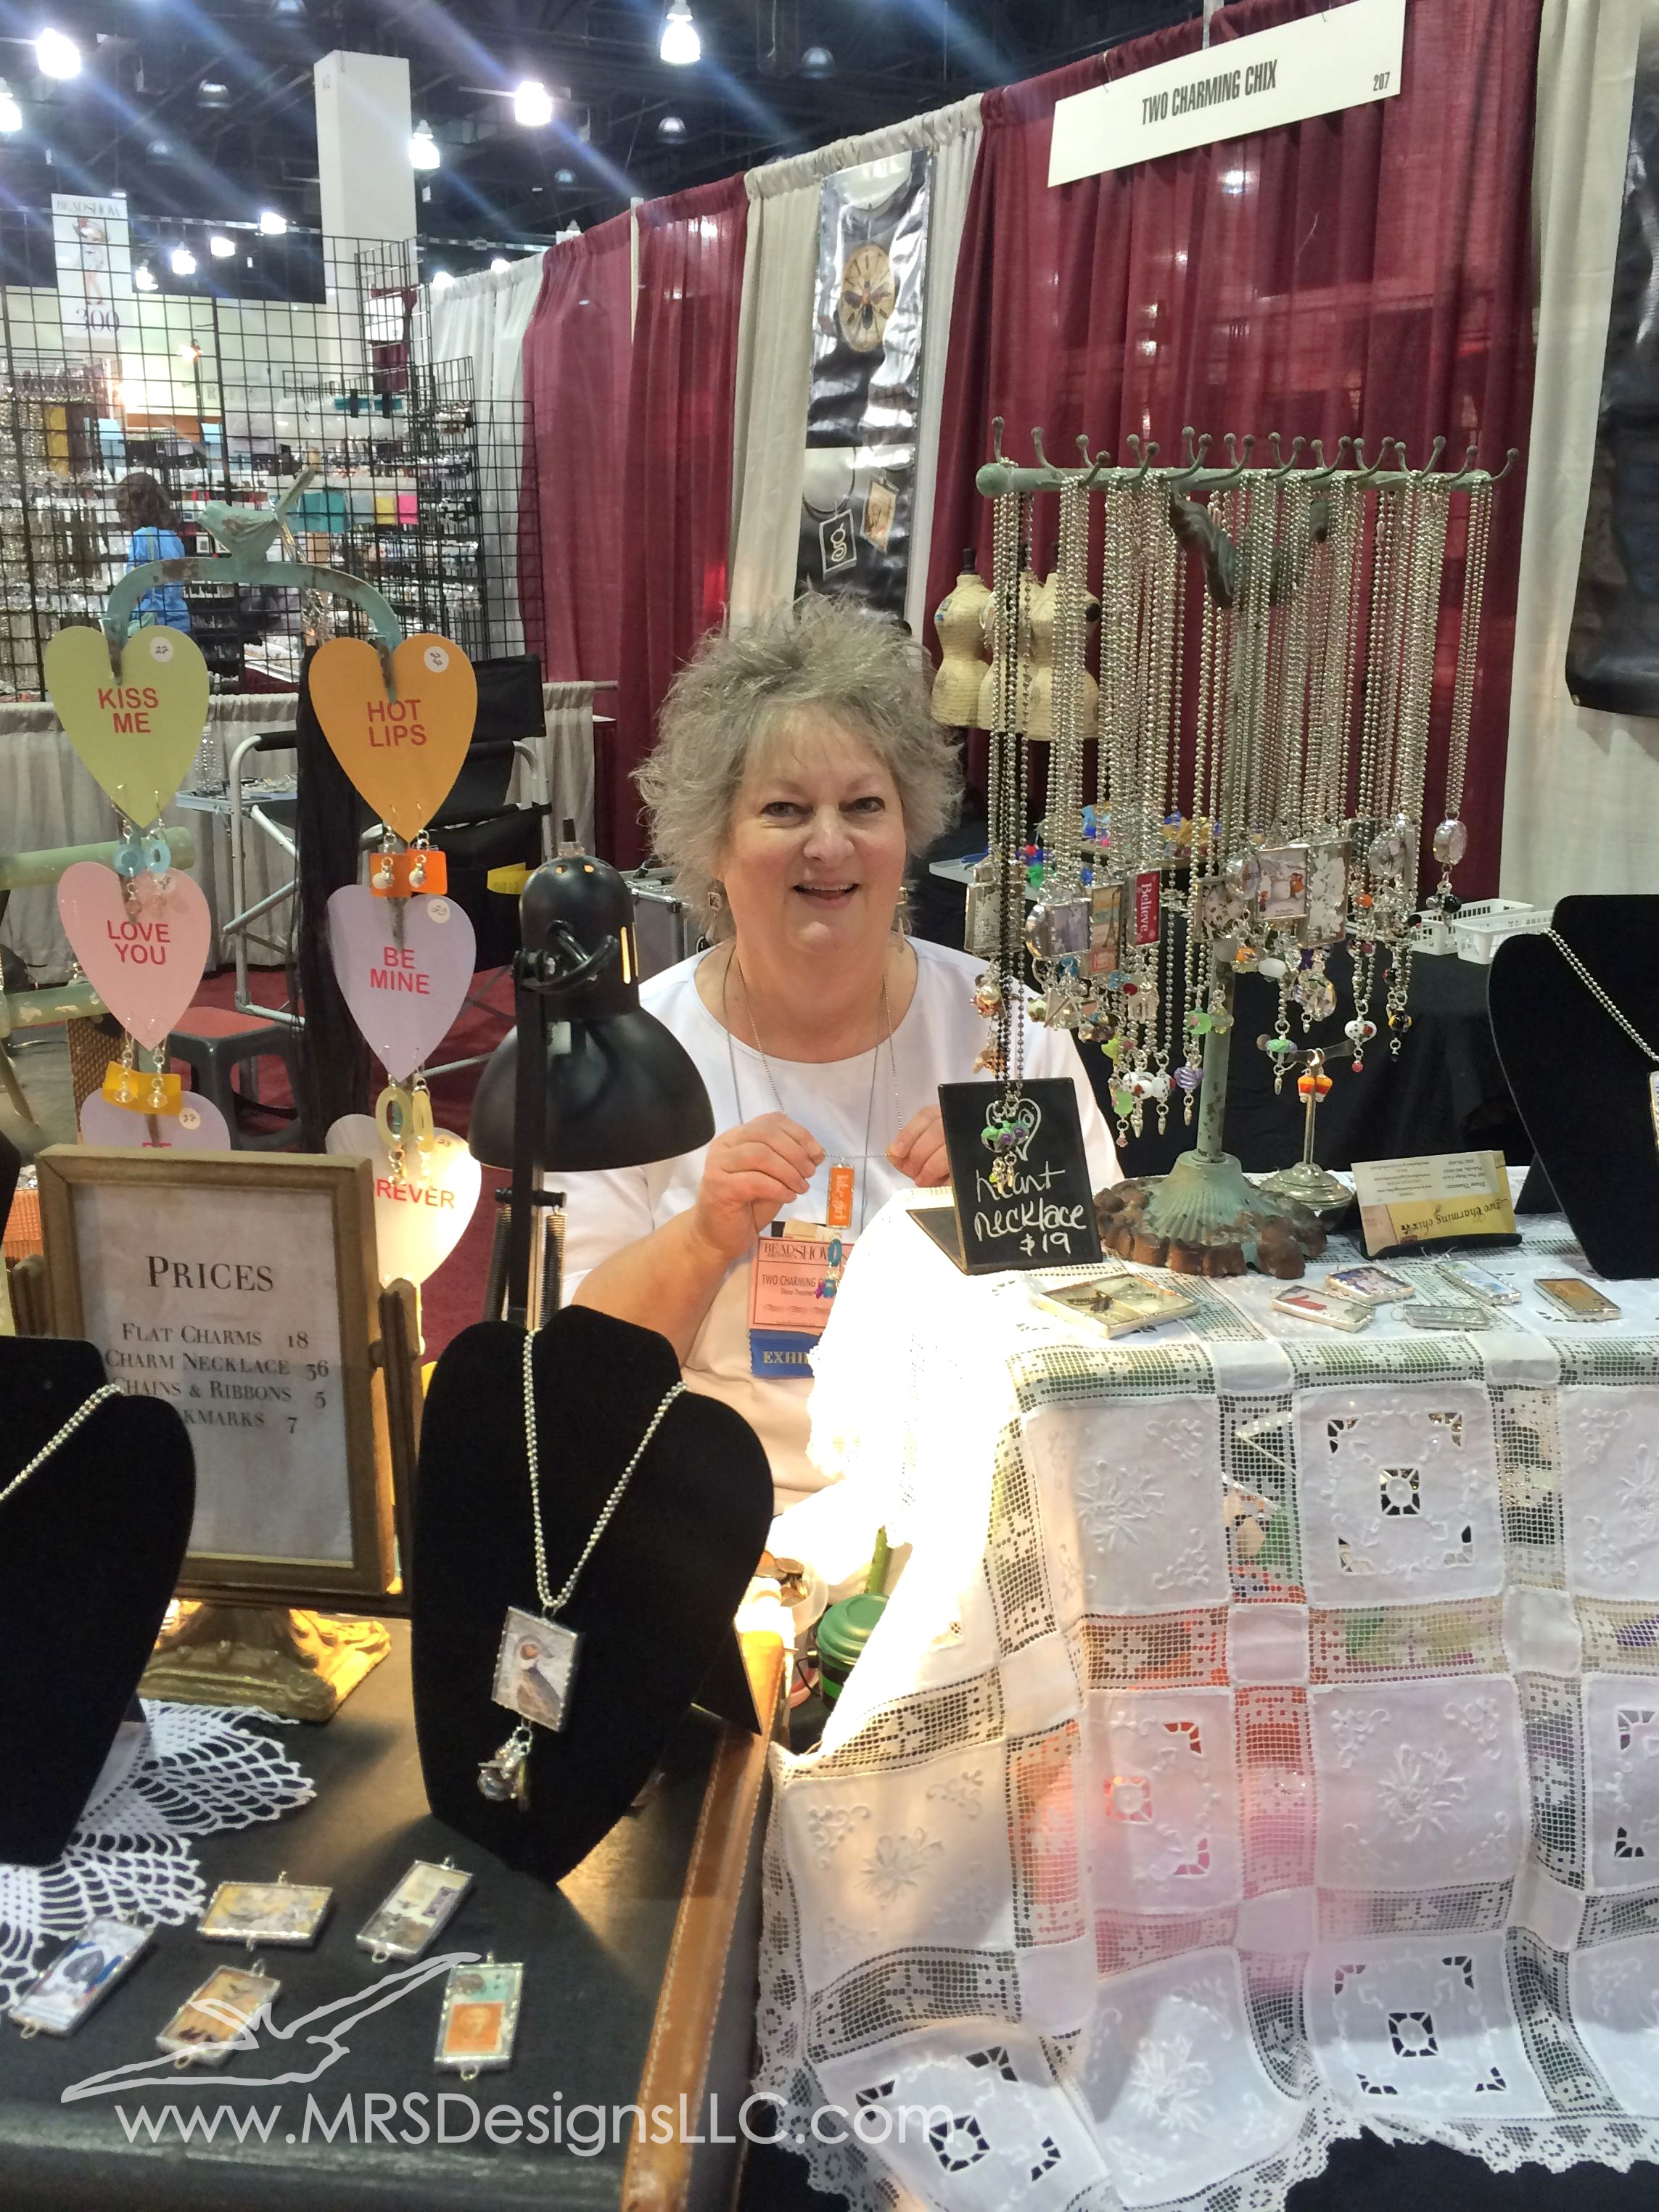 MRS Designs LLC meets Diane Thaemart of Two Charming Chix